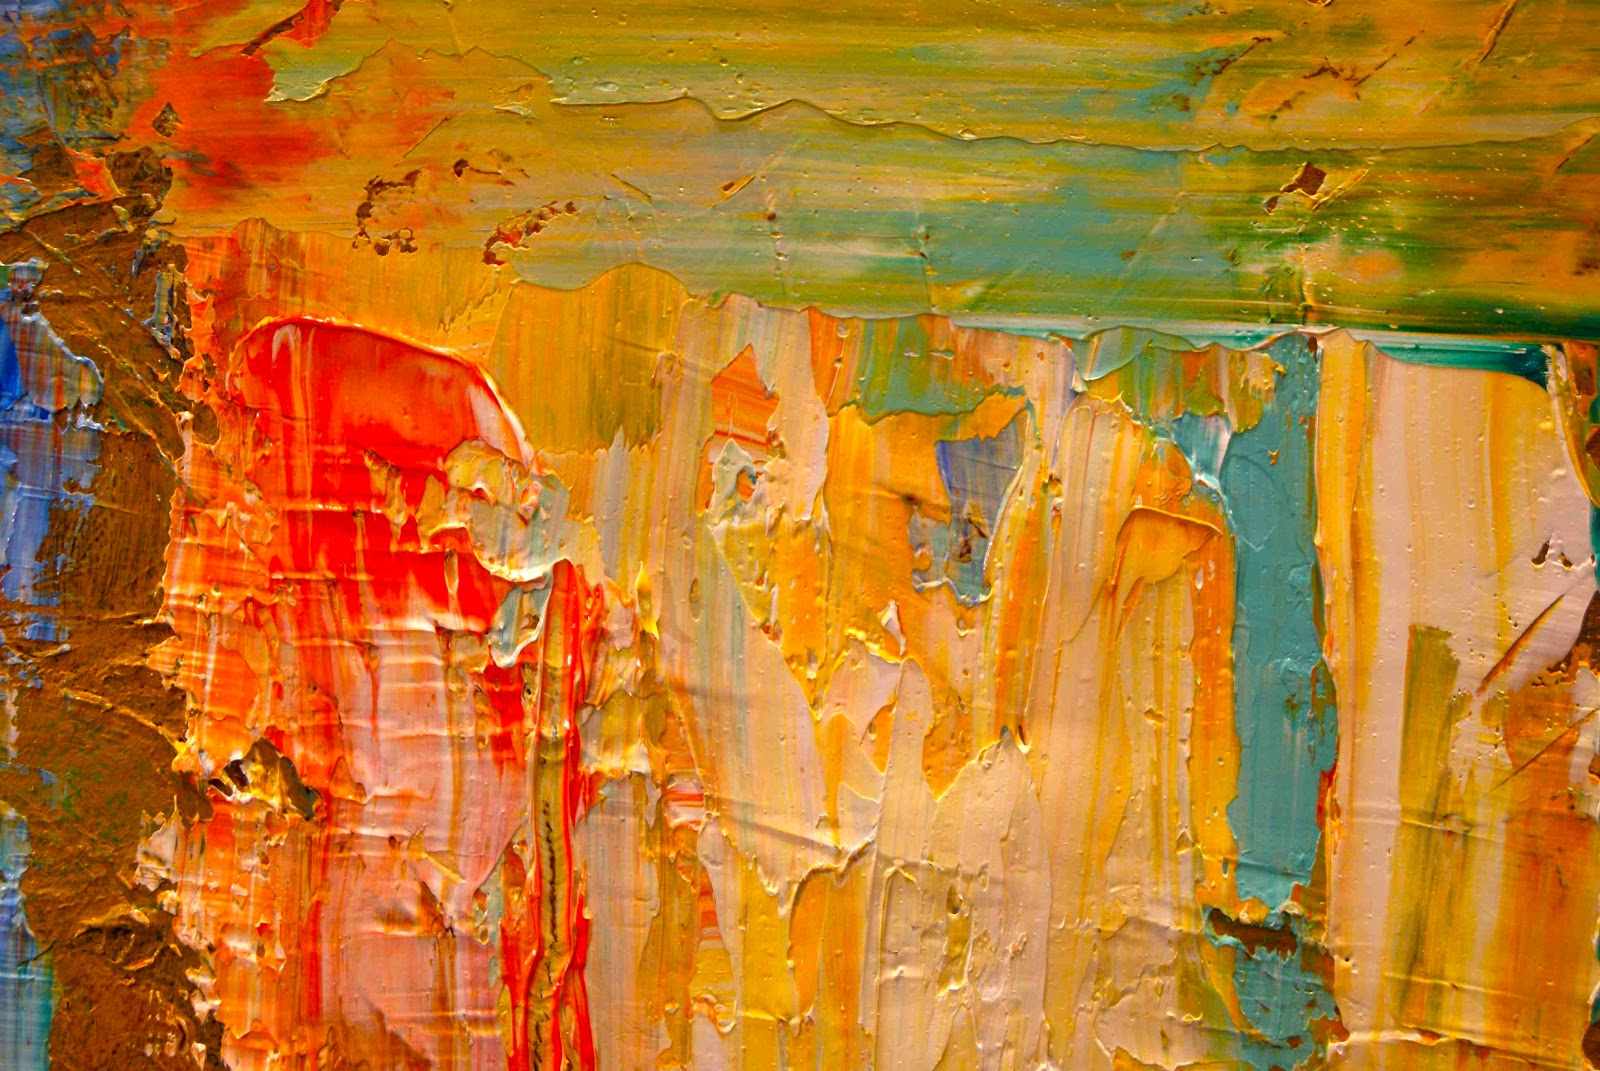 Daily Painters of California Colorful Textured Abstract Painting by